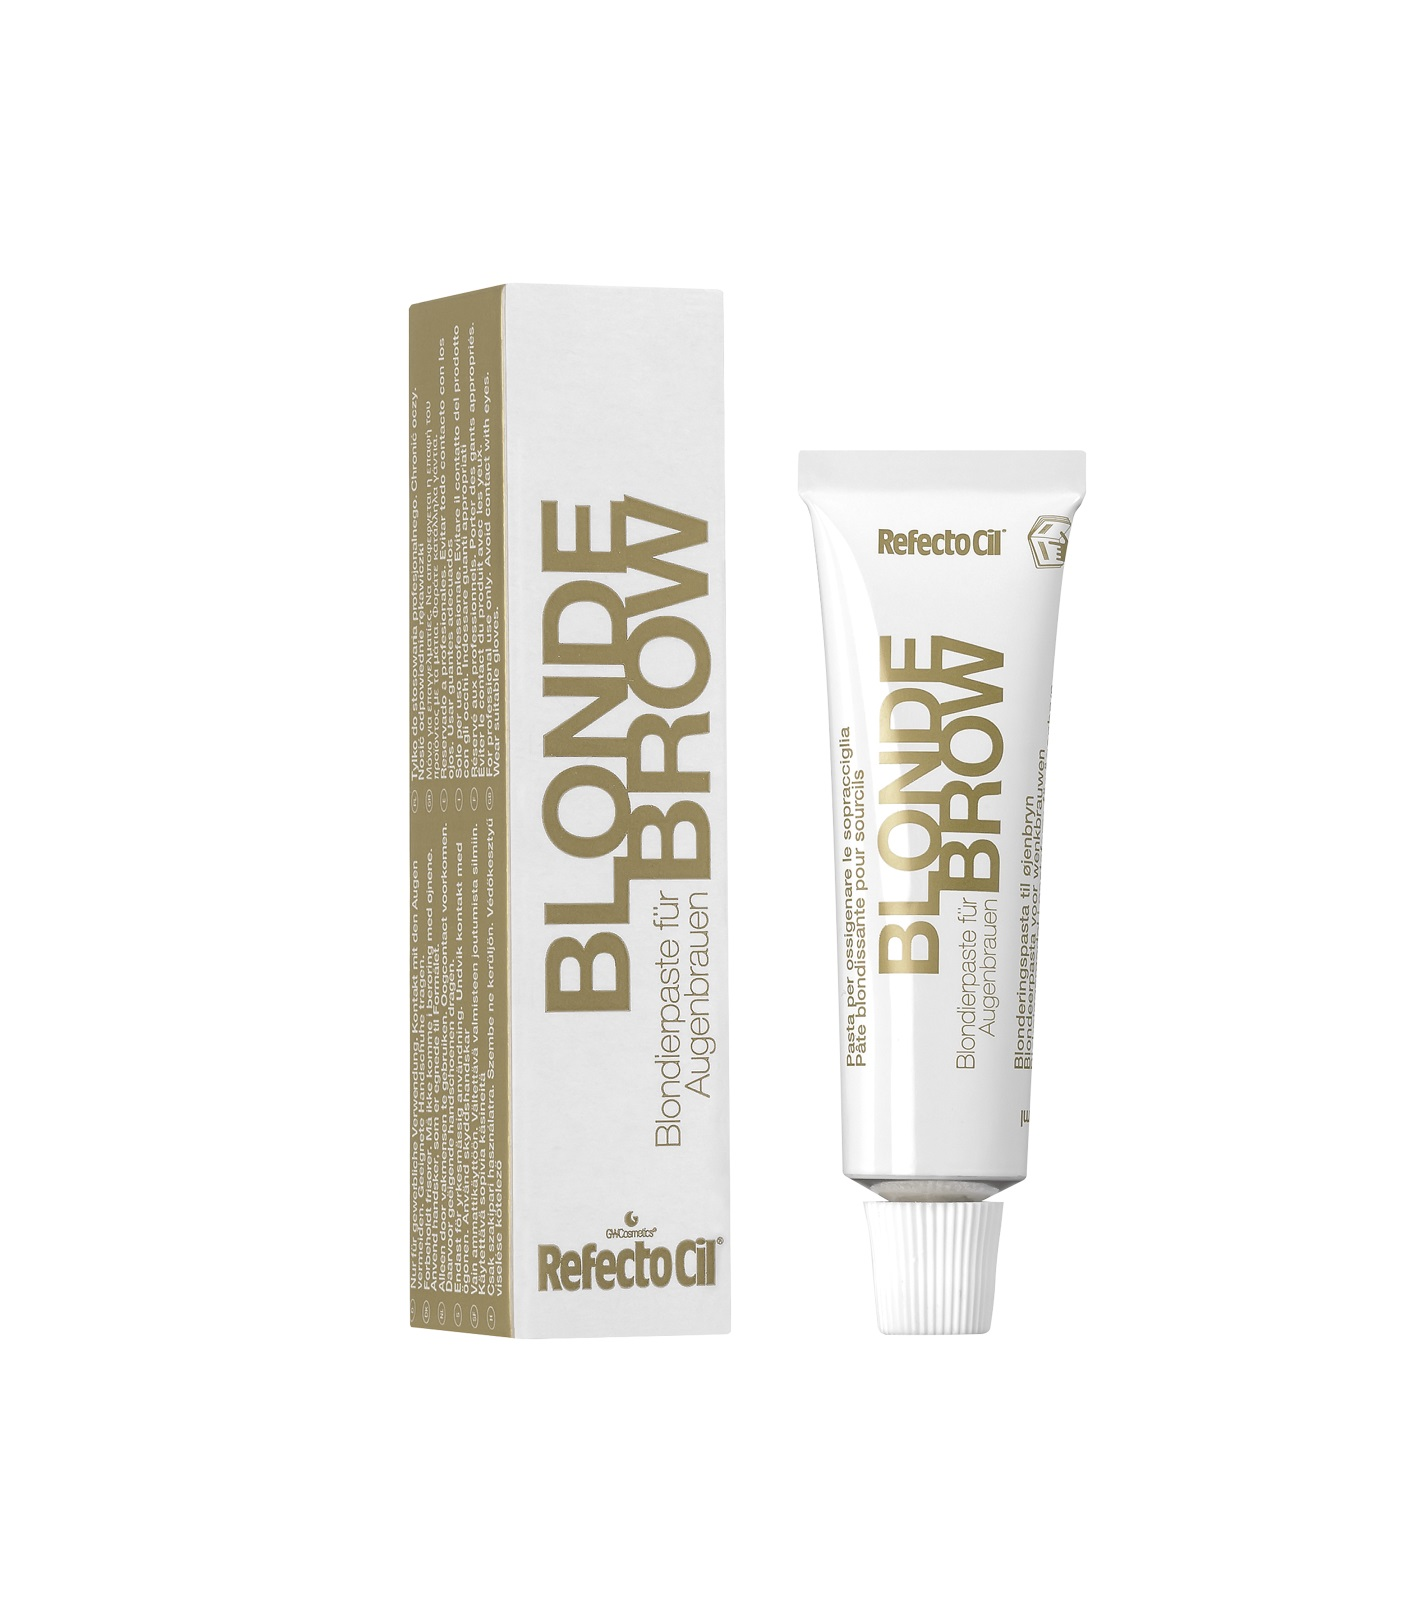 Refectocil Blonde Brow, 15ml (blekning)